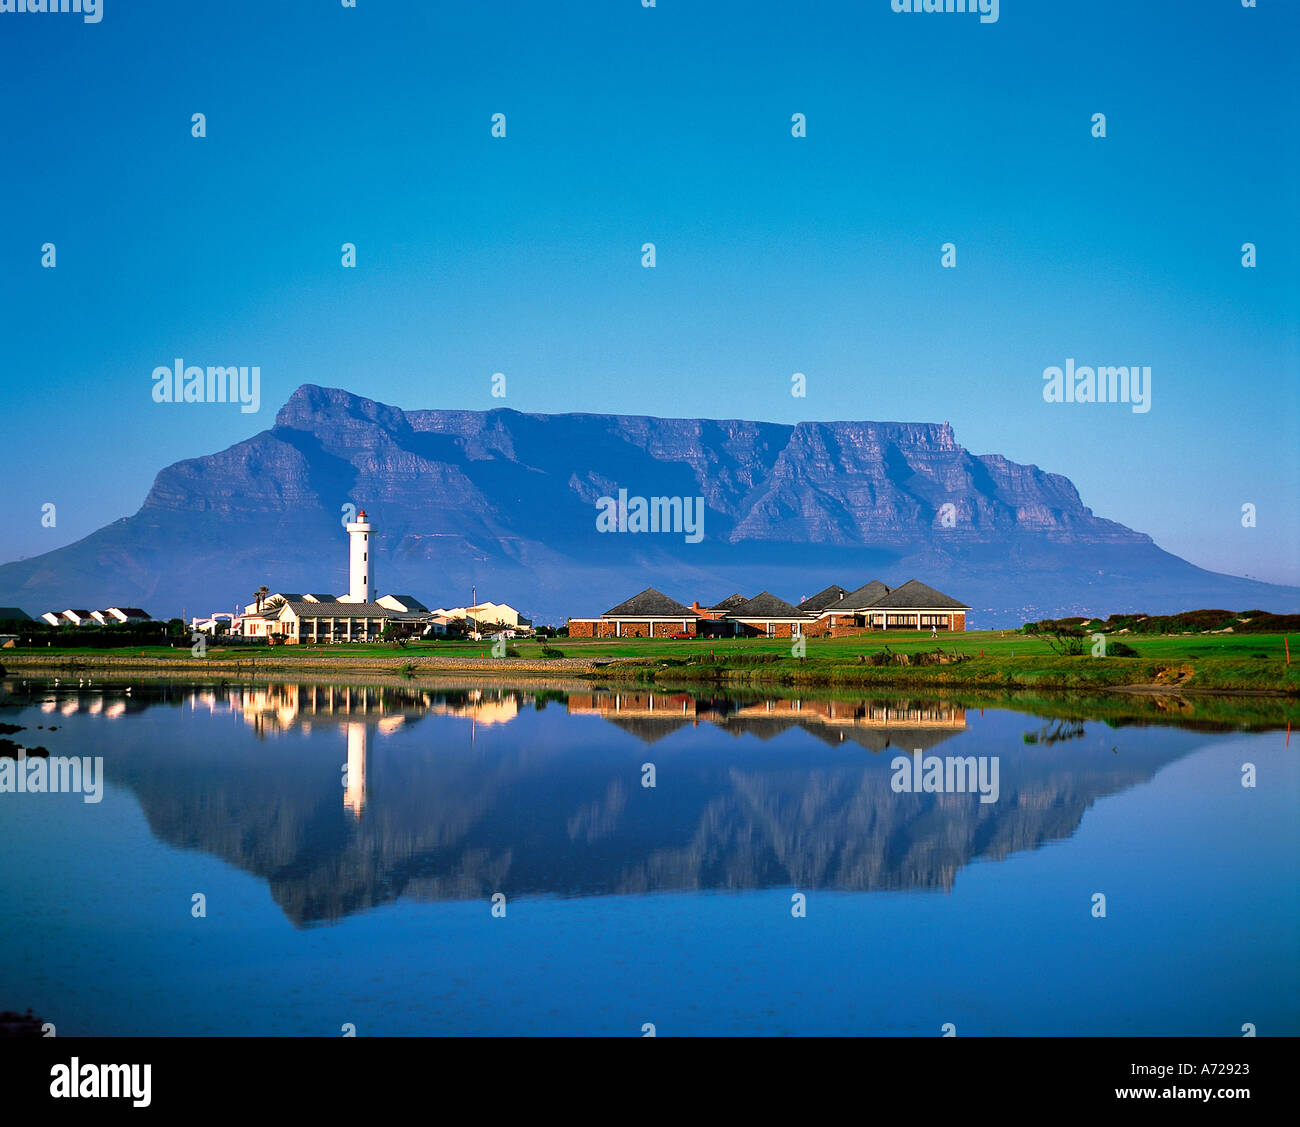 Table Mountain Kapstadt Provinz Western Cape Südafrika Stockfoto